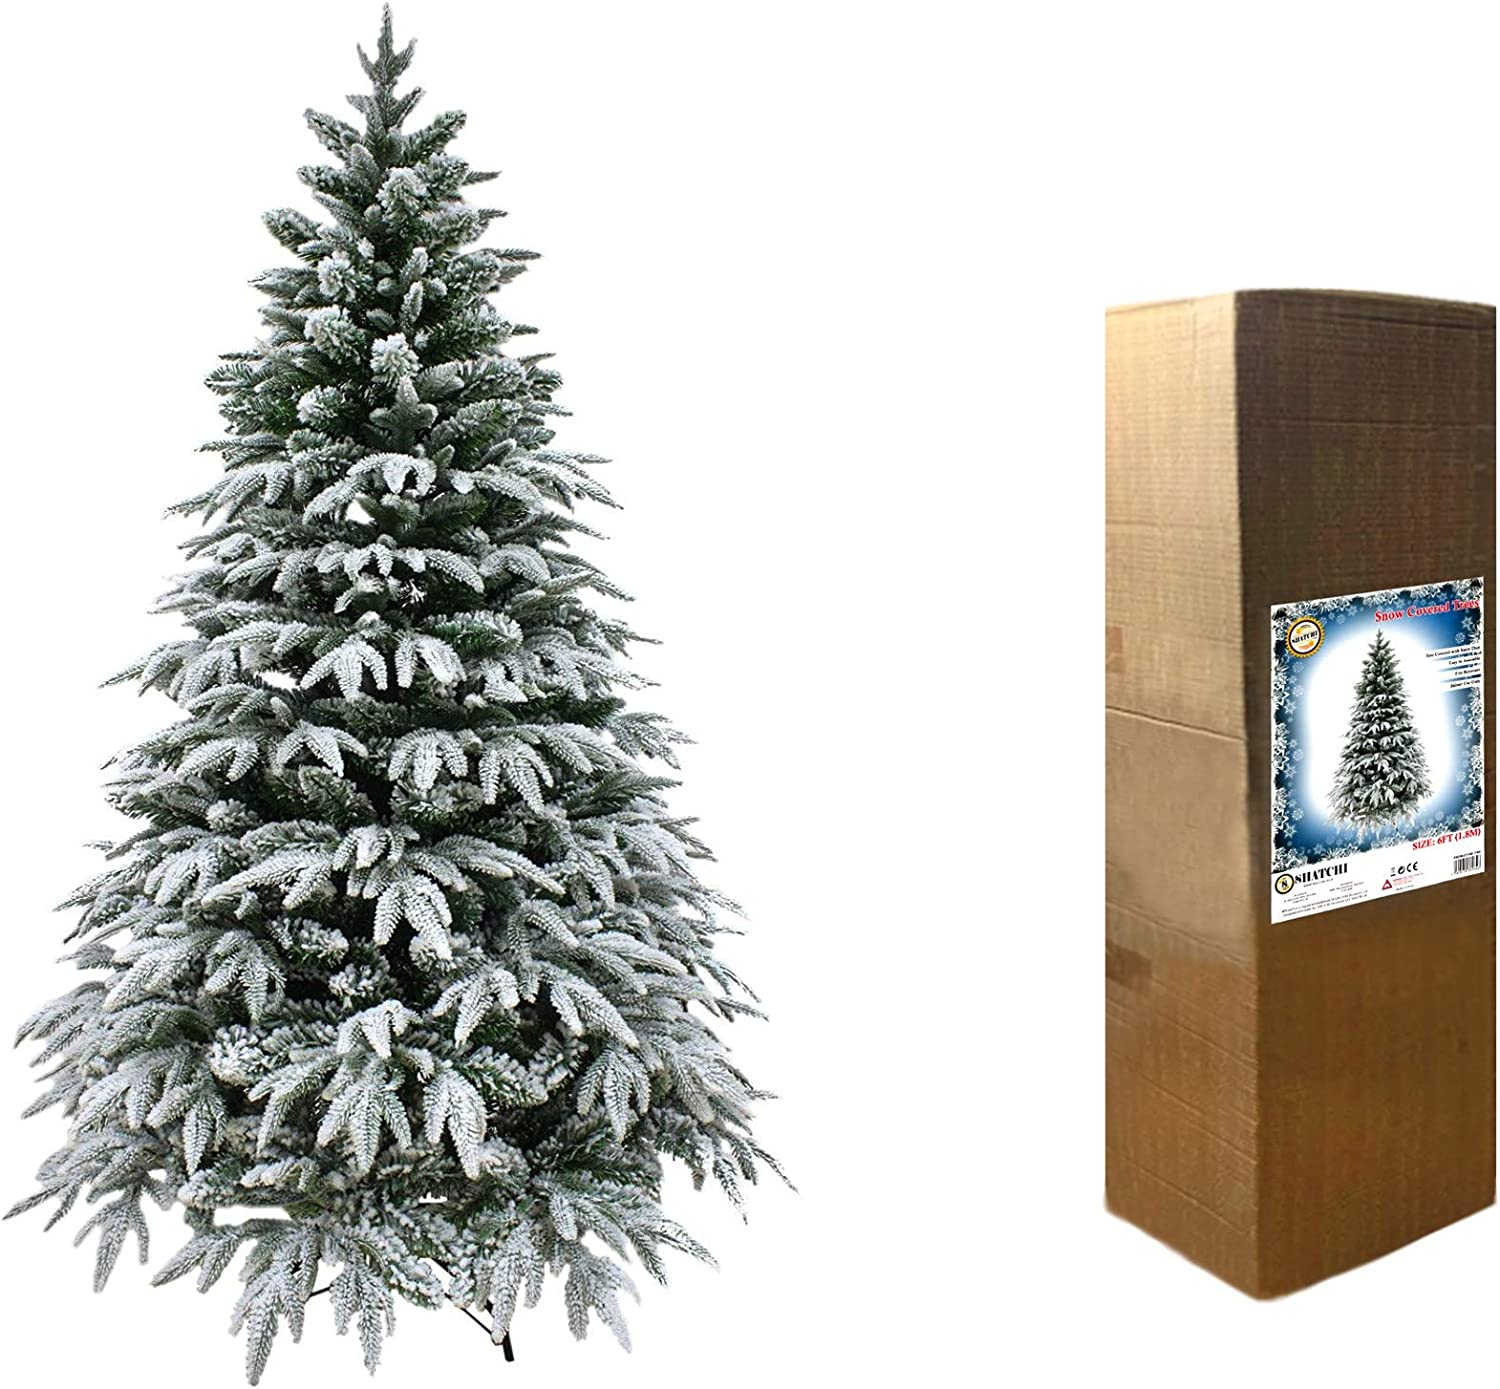 Shatchi Lapland Fir Covered Artificial Christmas Tree Snow Flocked 567 Mixed Tips Hinged Branches Bushy Luxury Xmas Home Snowy Decorations Green 5ft 150cm Amazon Co Uk Kitchen Home